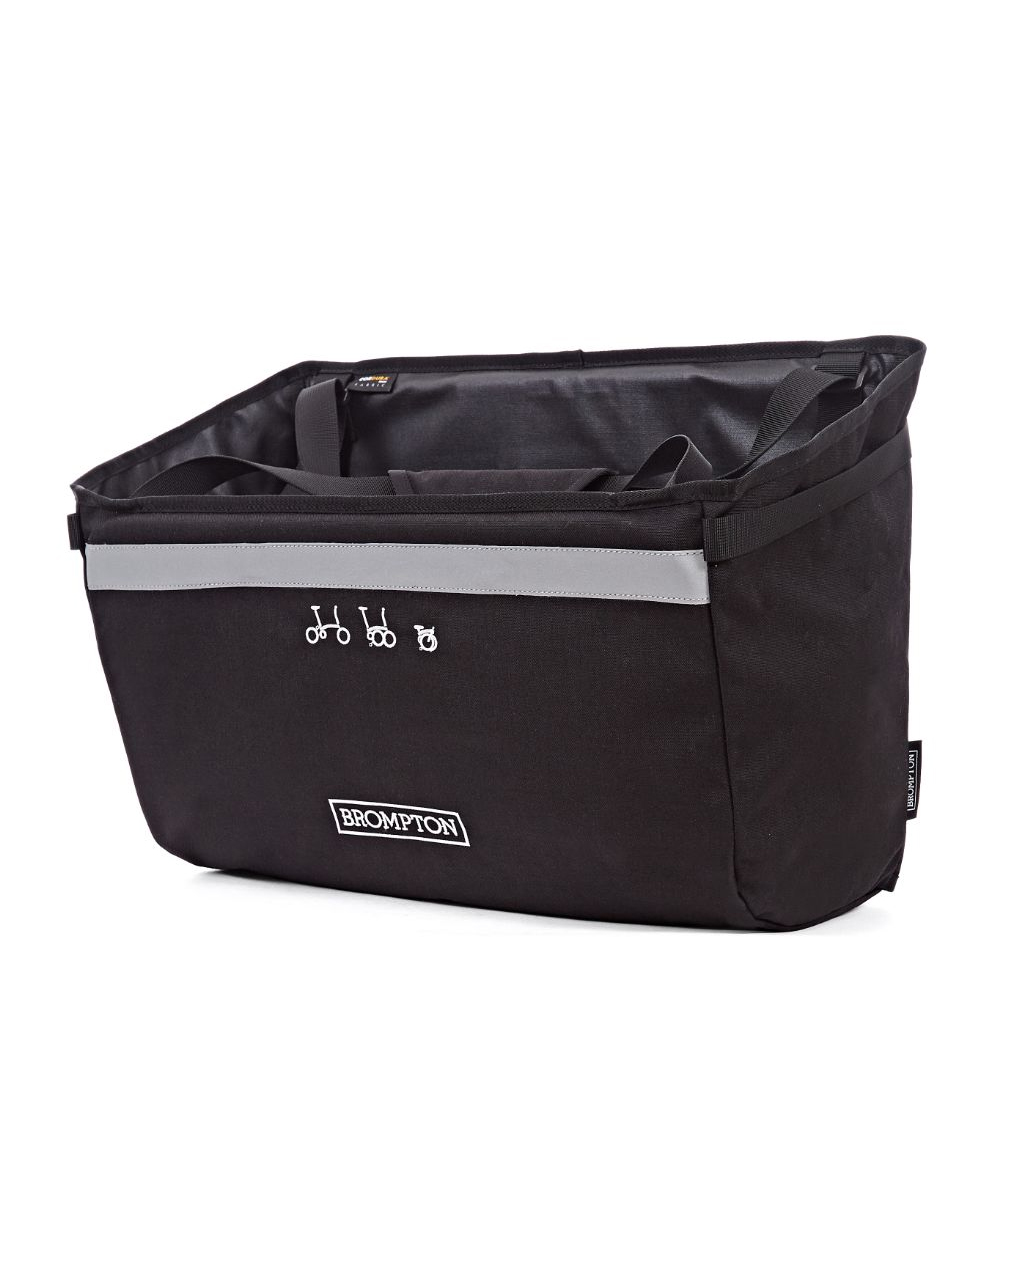 Q-Parts - Basket Bag - Black